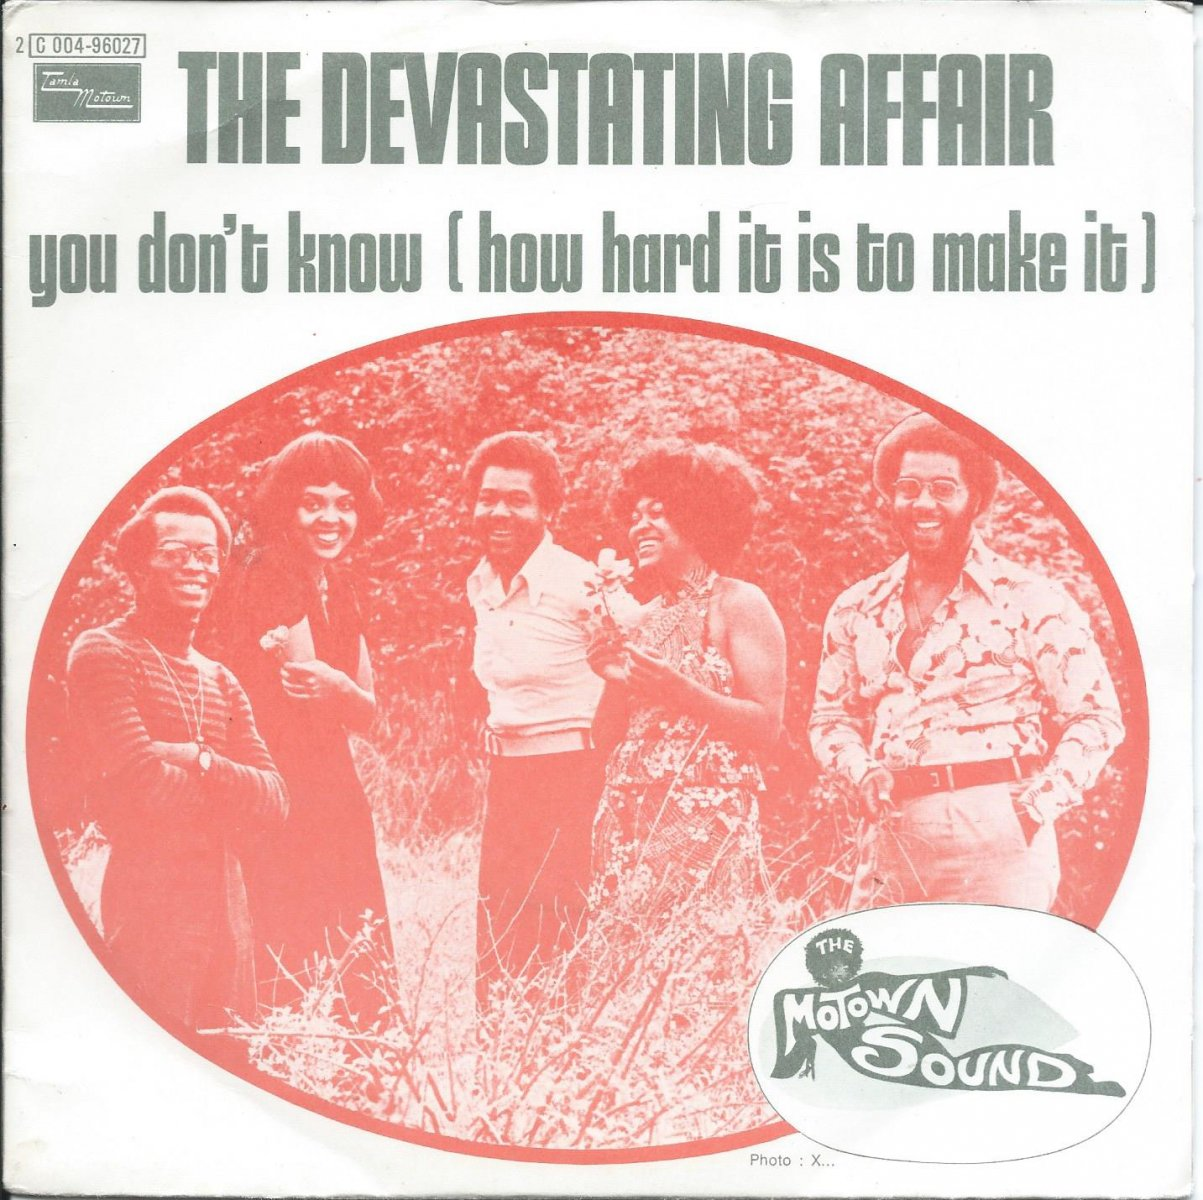 THE DEVASTATING AFFAIR / YOU DON'T KNOW HOW (HOW HARD IT IS TO MAKE IT) (7